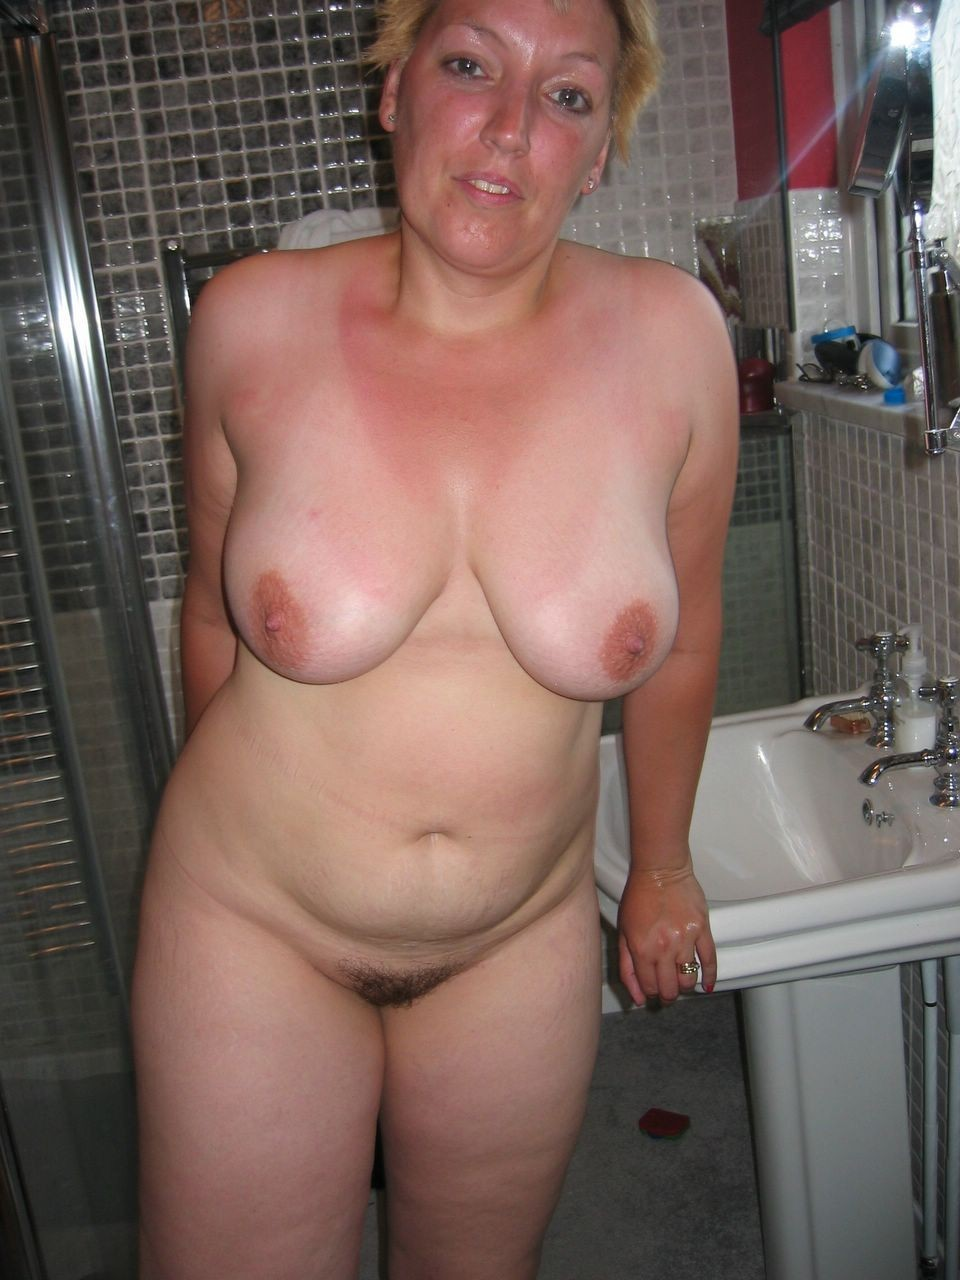 Apologise, but, amateur nude naked pinky mature more than reserve